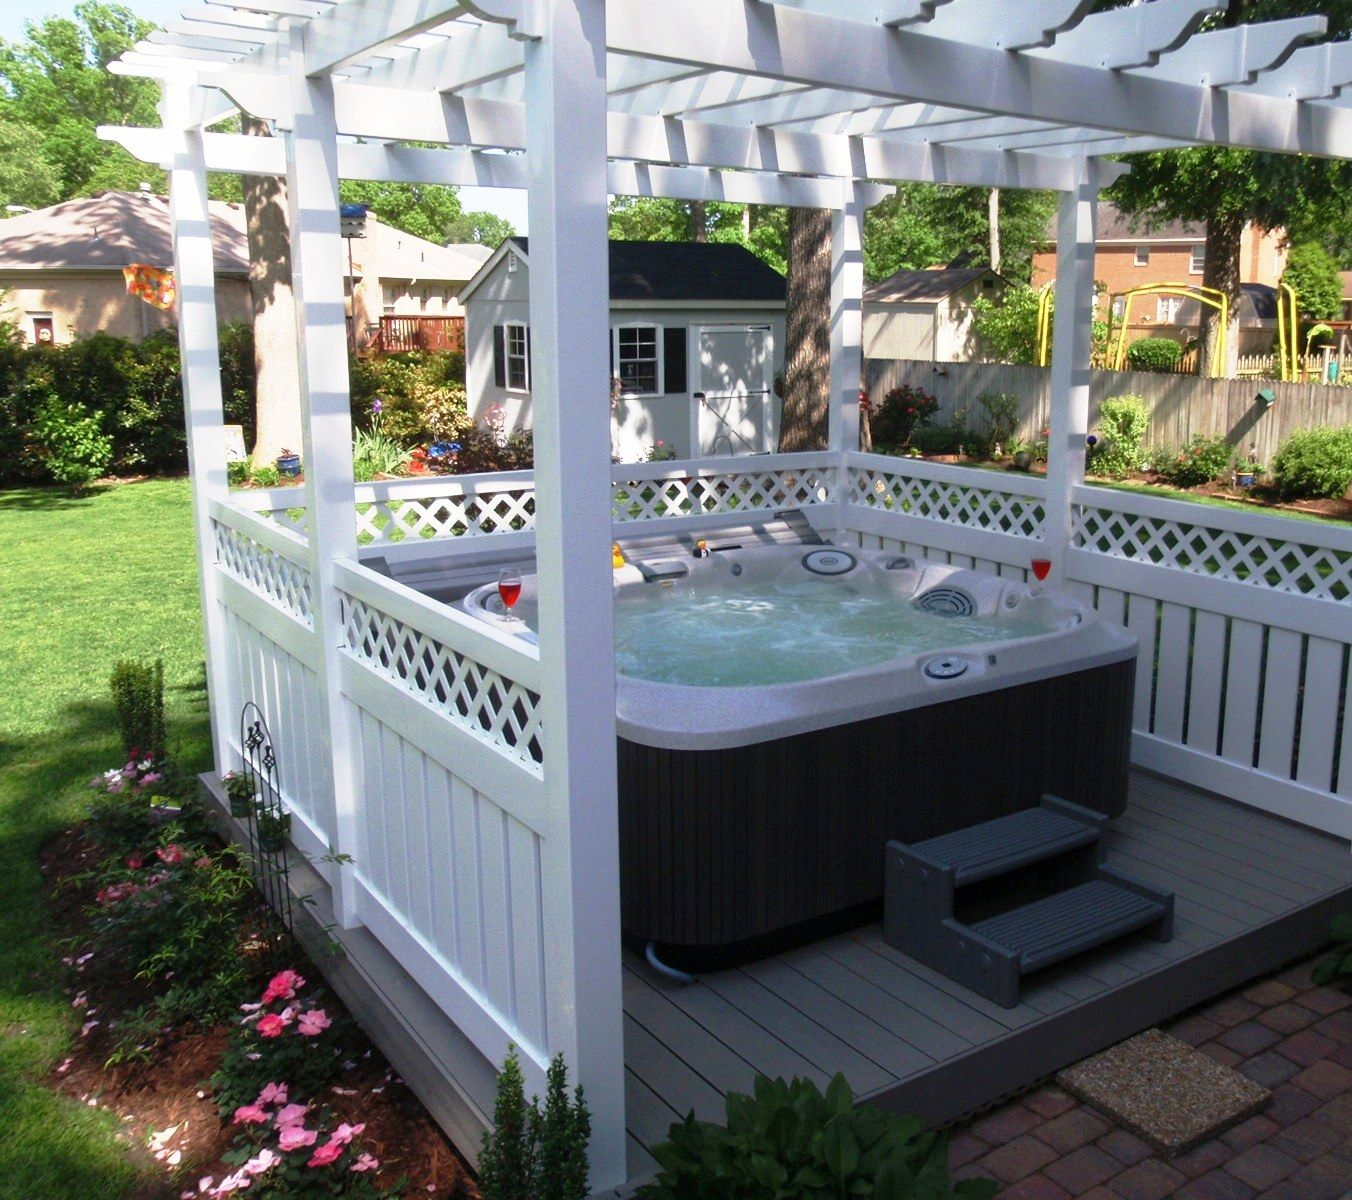 8 ways to place your original outdoor jacuzzi hot tubs. Black Bedroom Furniture Sets. Home Design Ideas